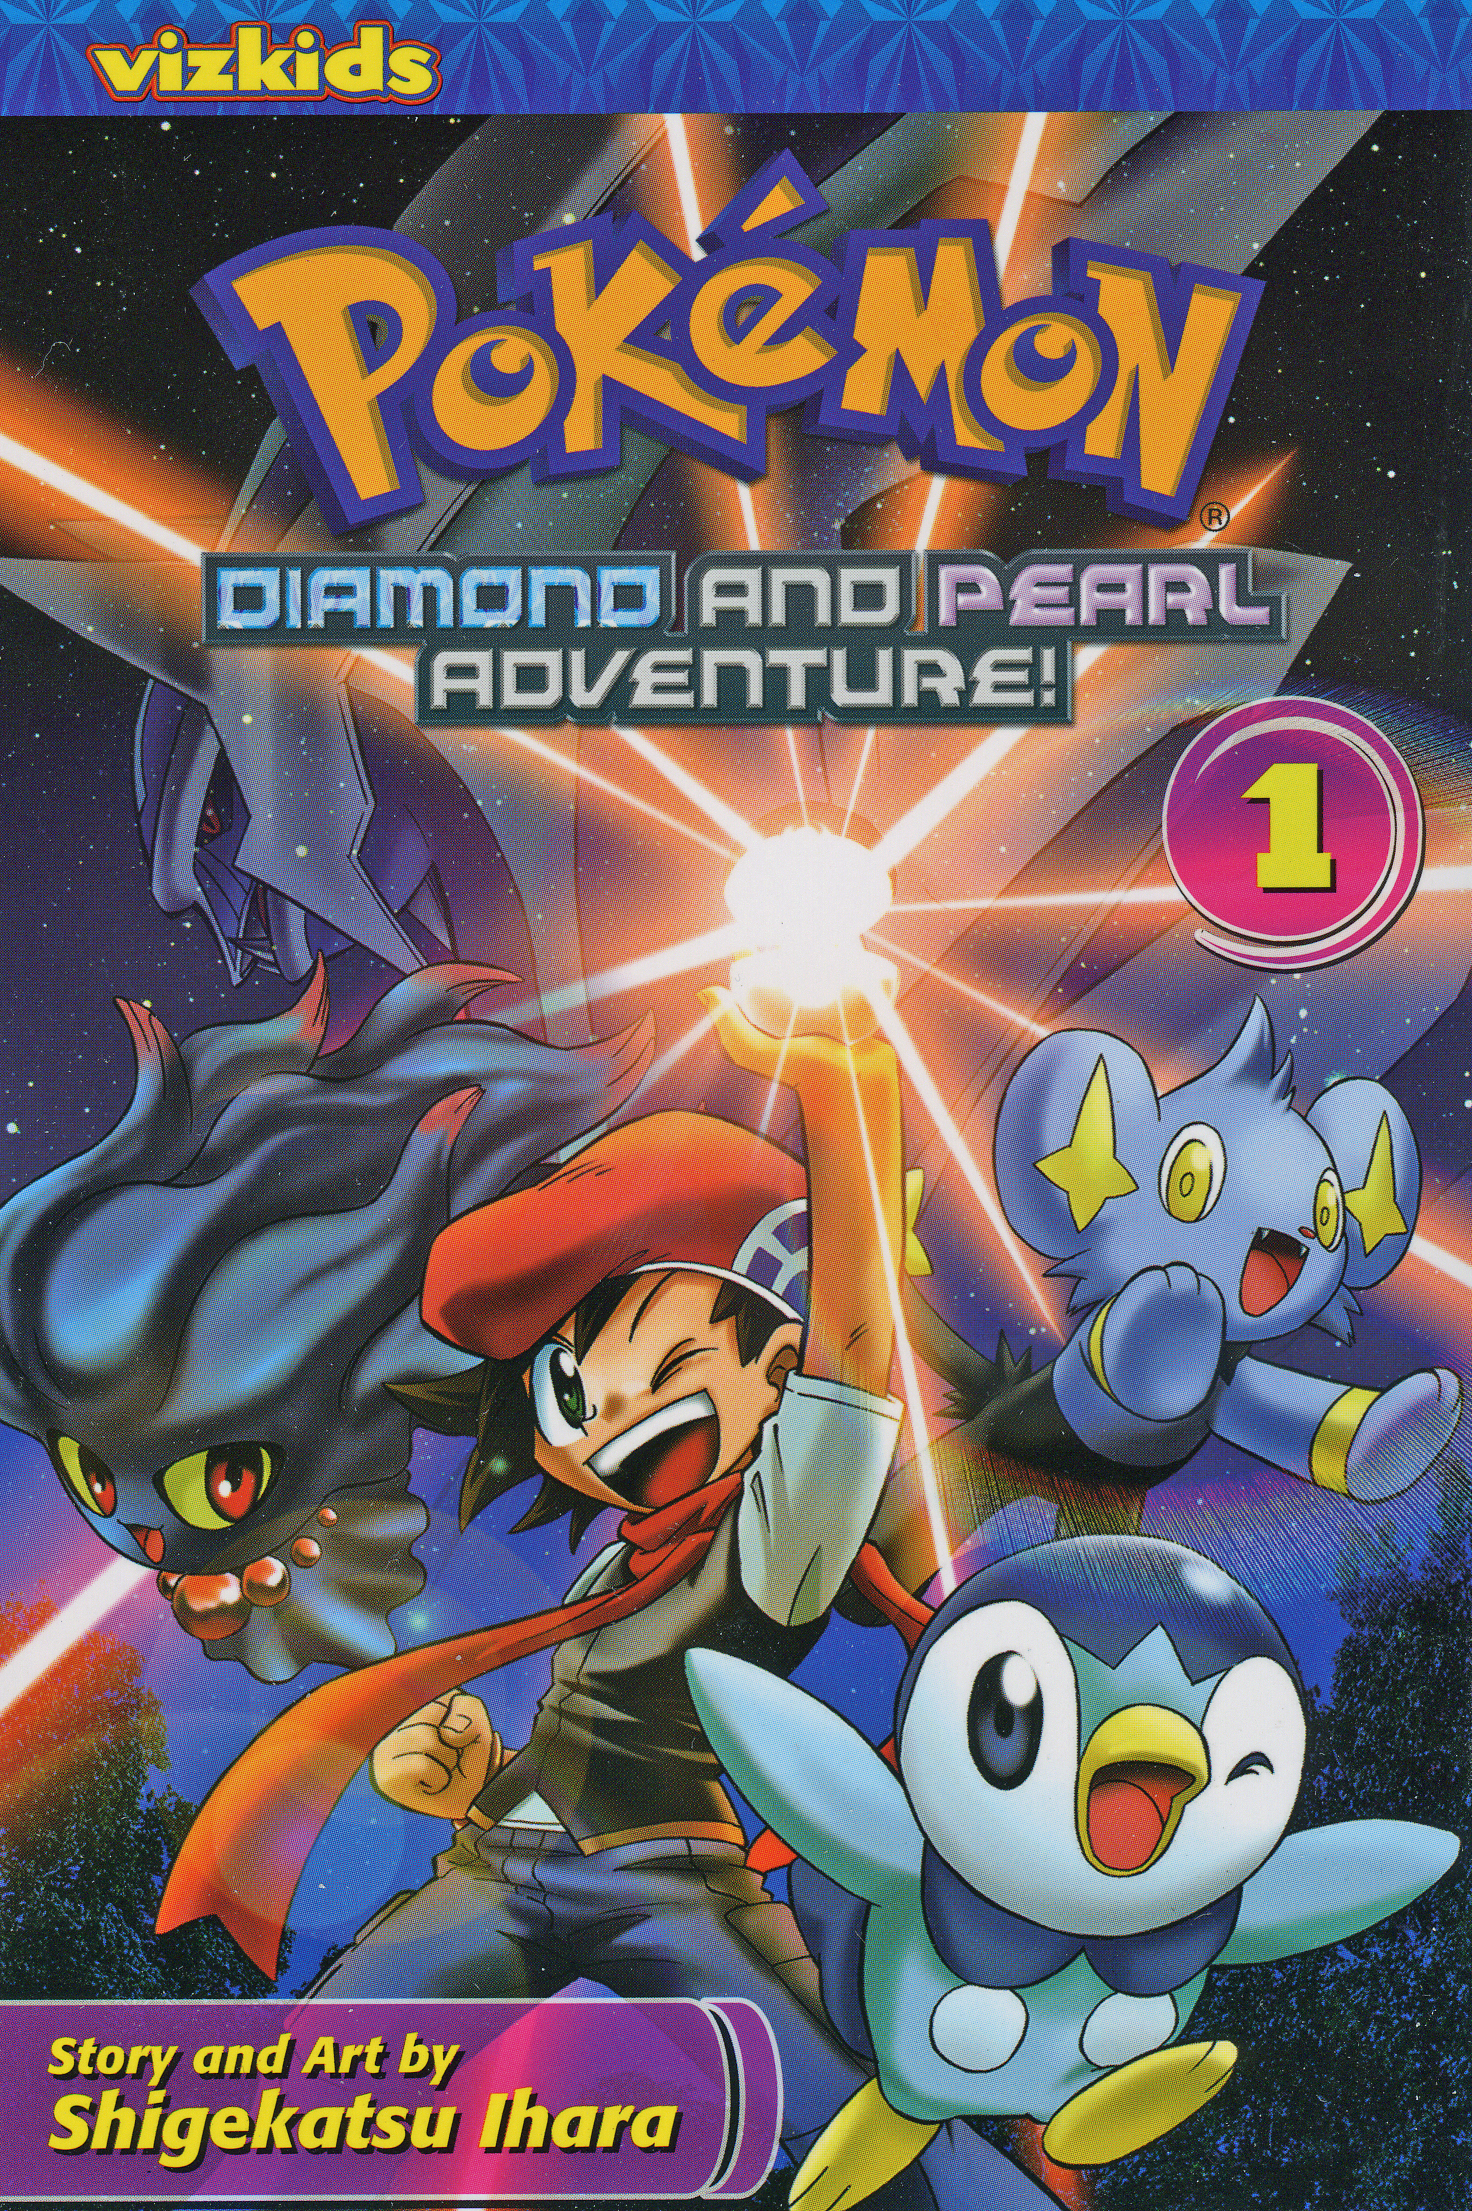 pokémon diamond and pearl adventure!: volume 1 | pokémon wiki